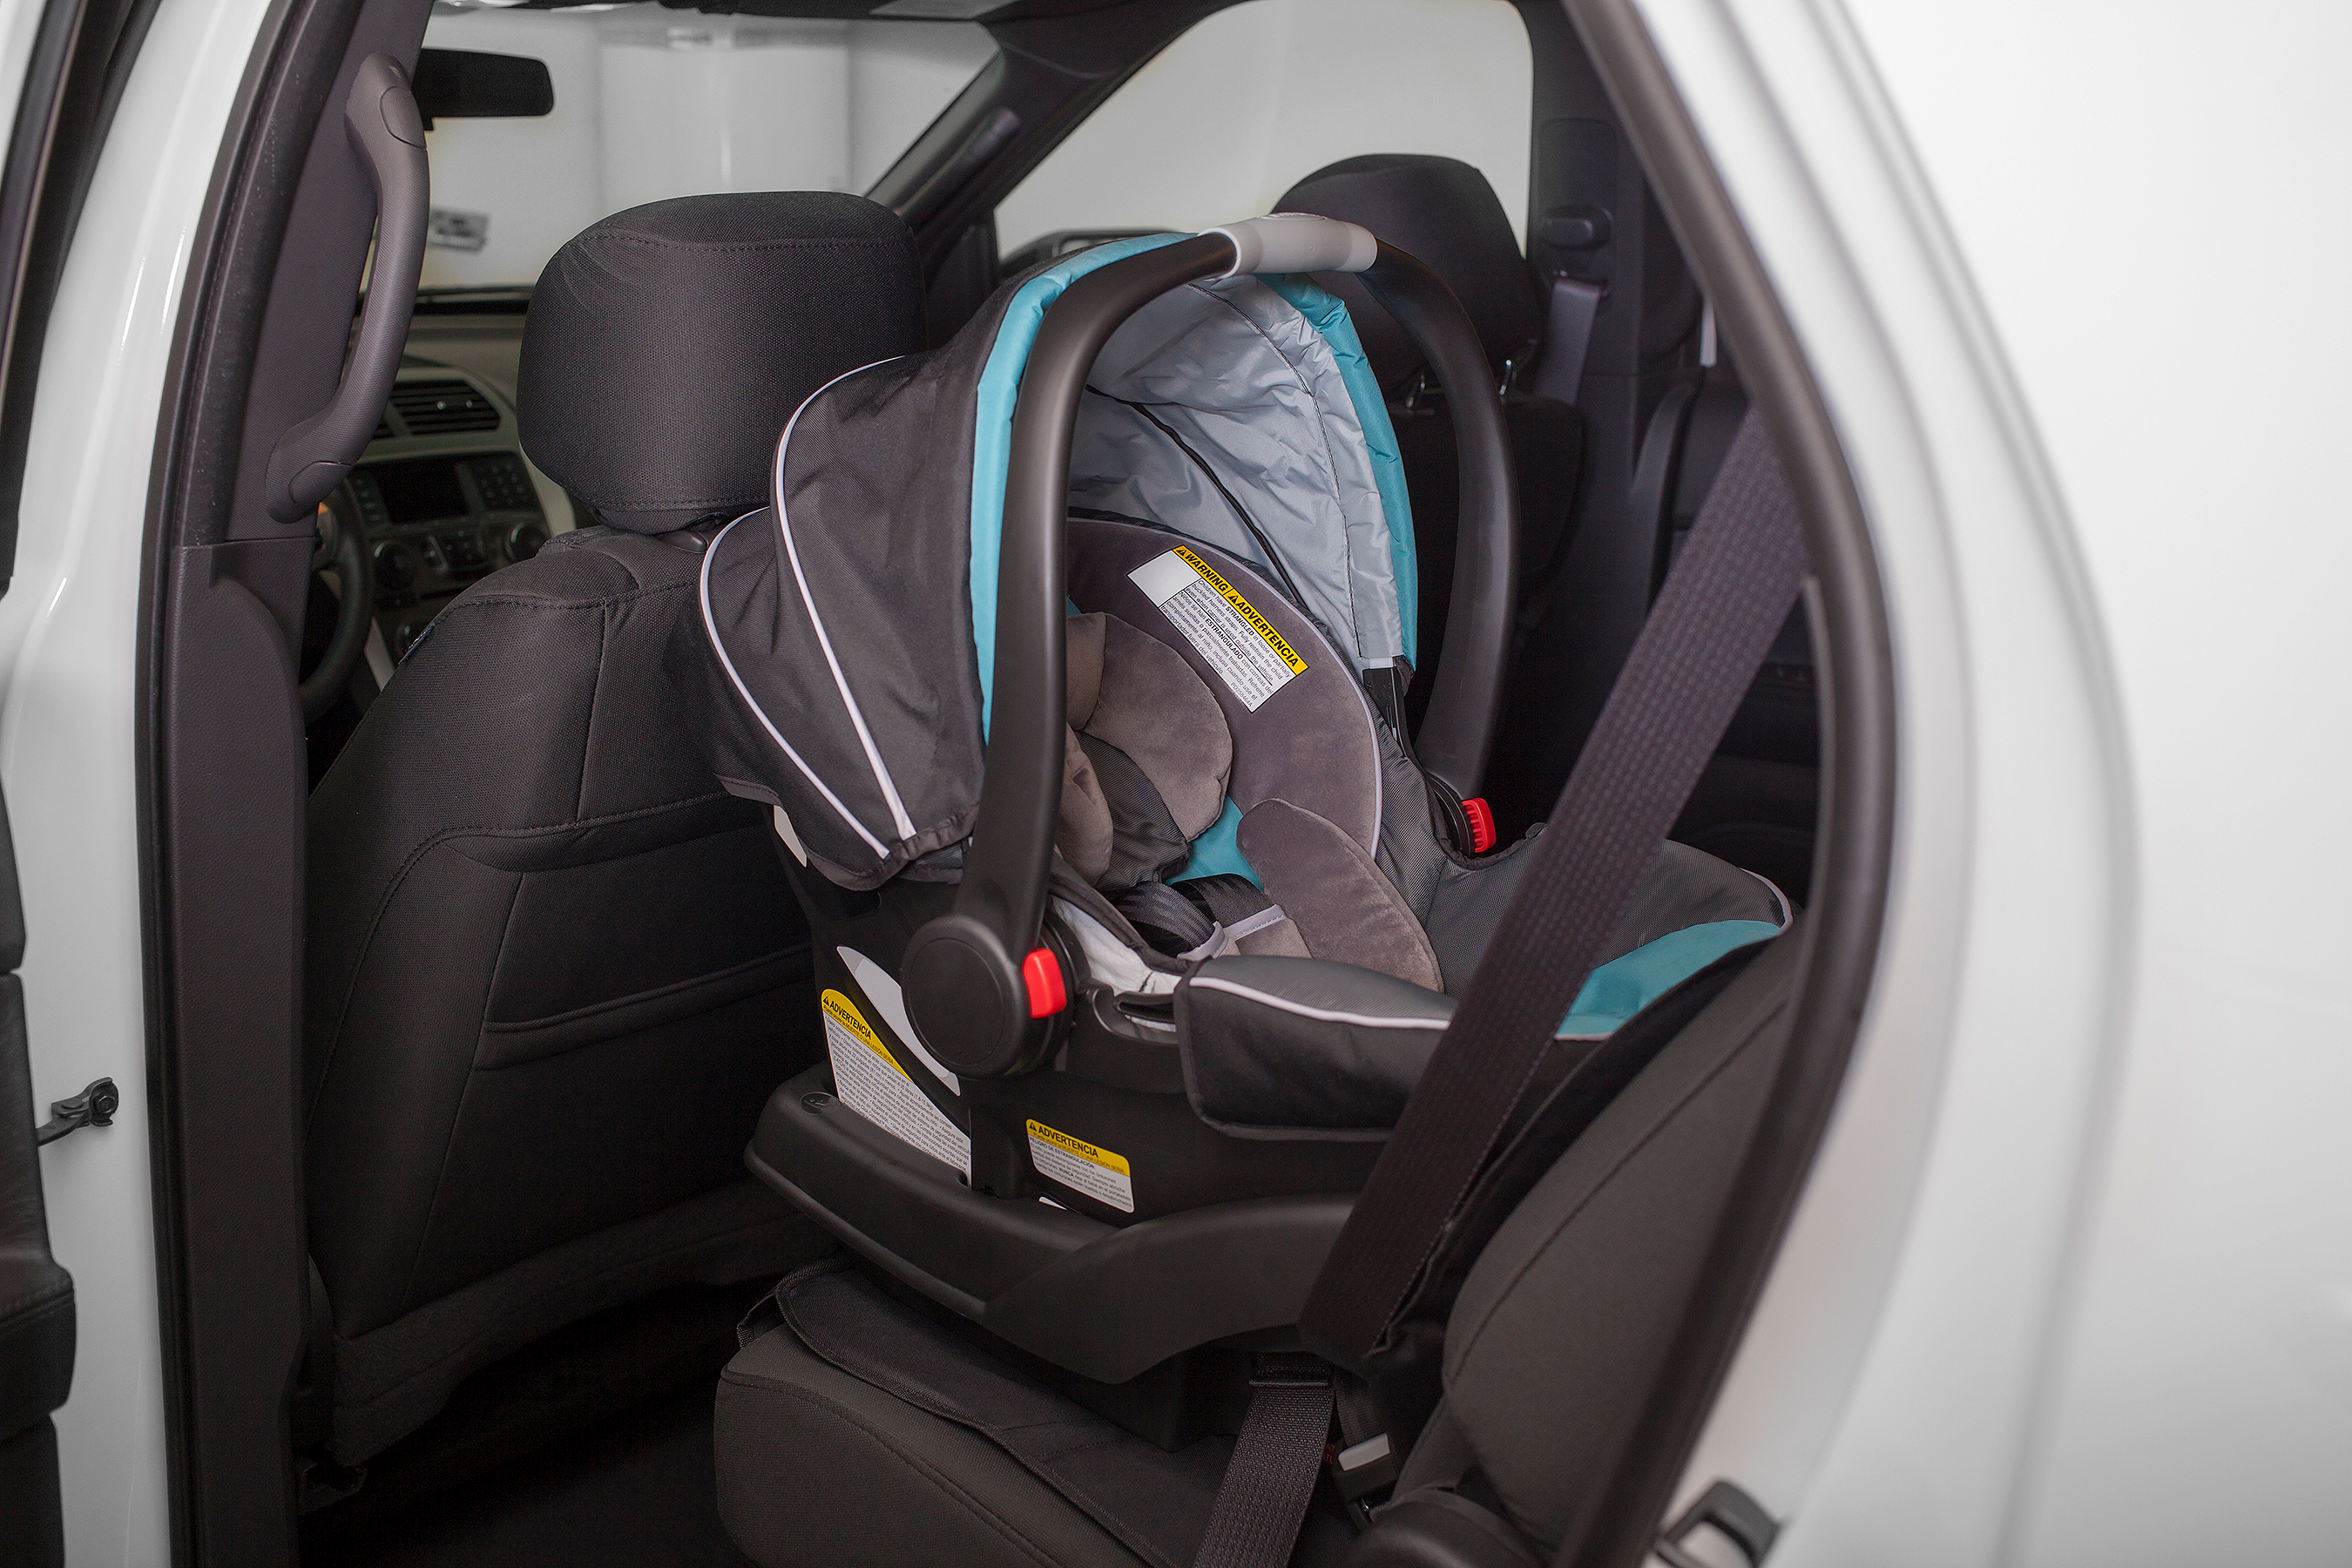 Rear Facing Car Seat in Back of Car